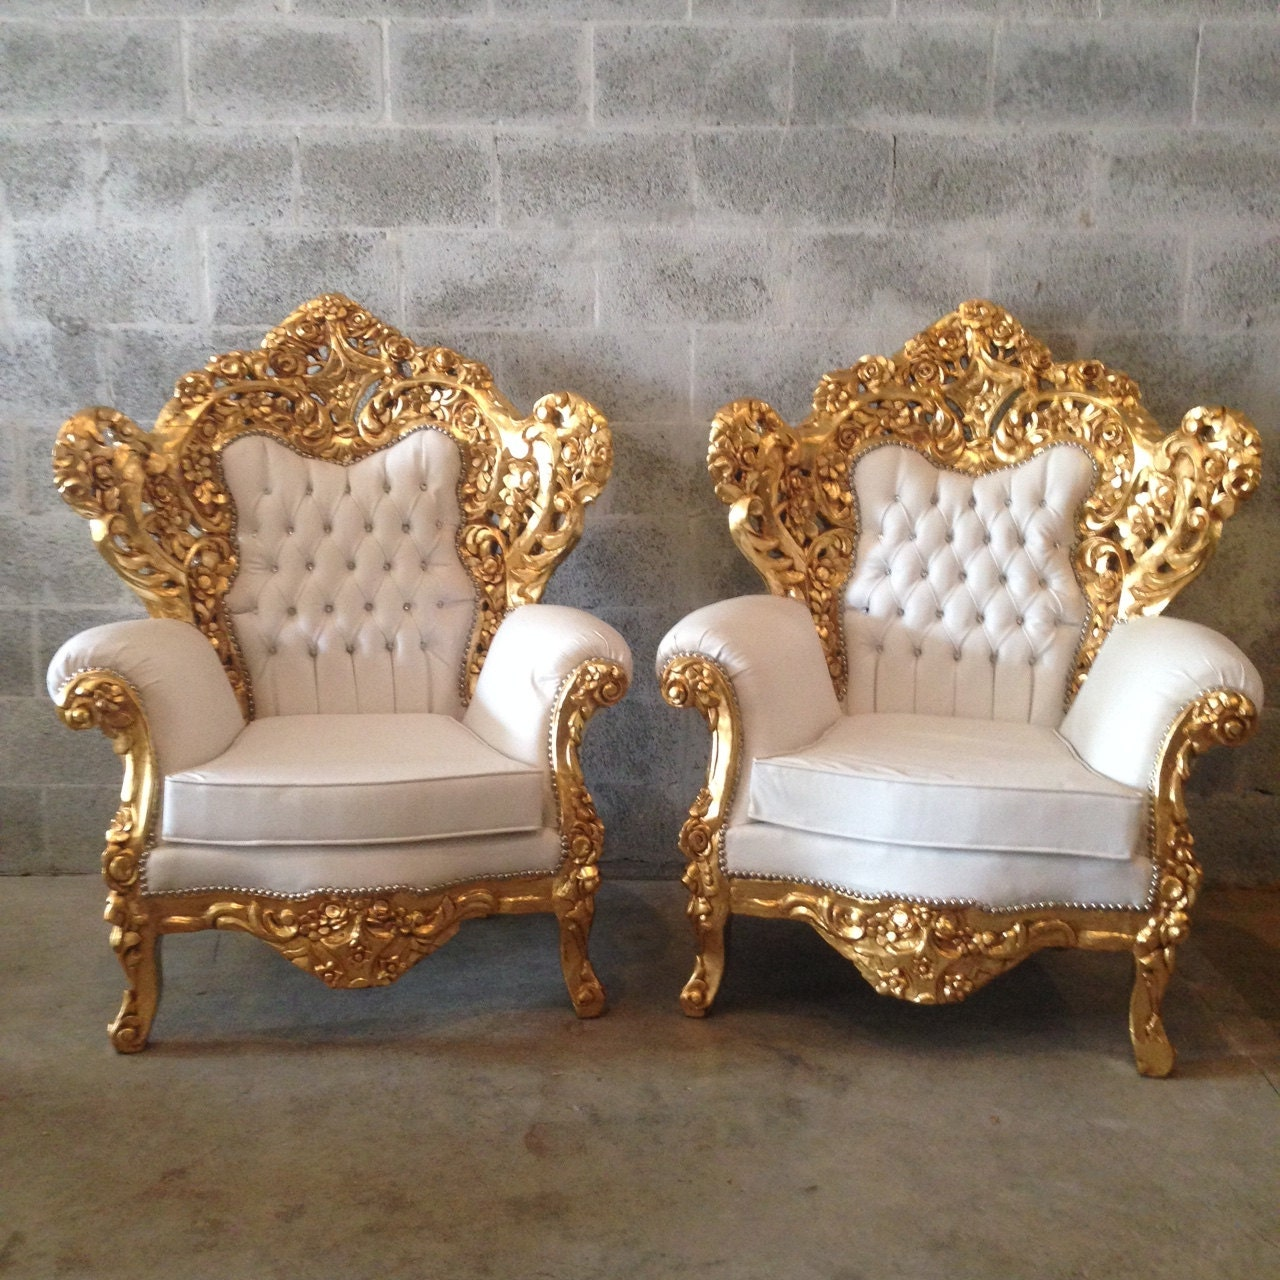 White leather chair antique italian baroque throne chair for Antique baroque furniture